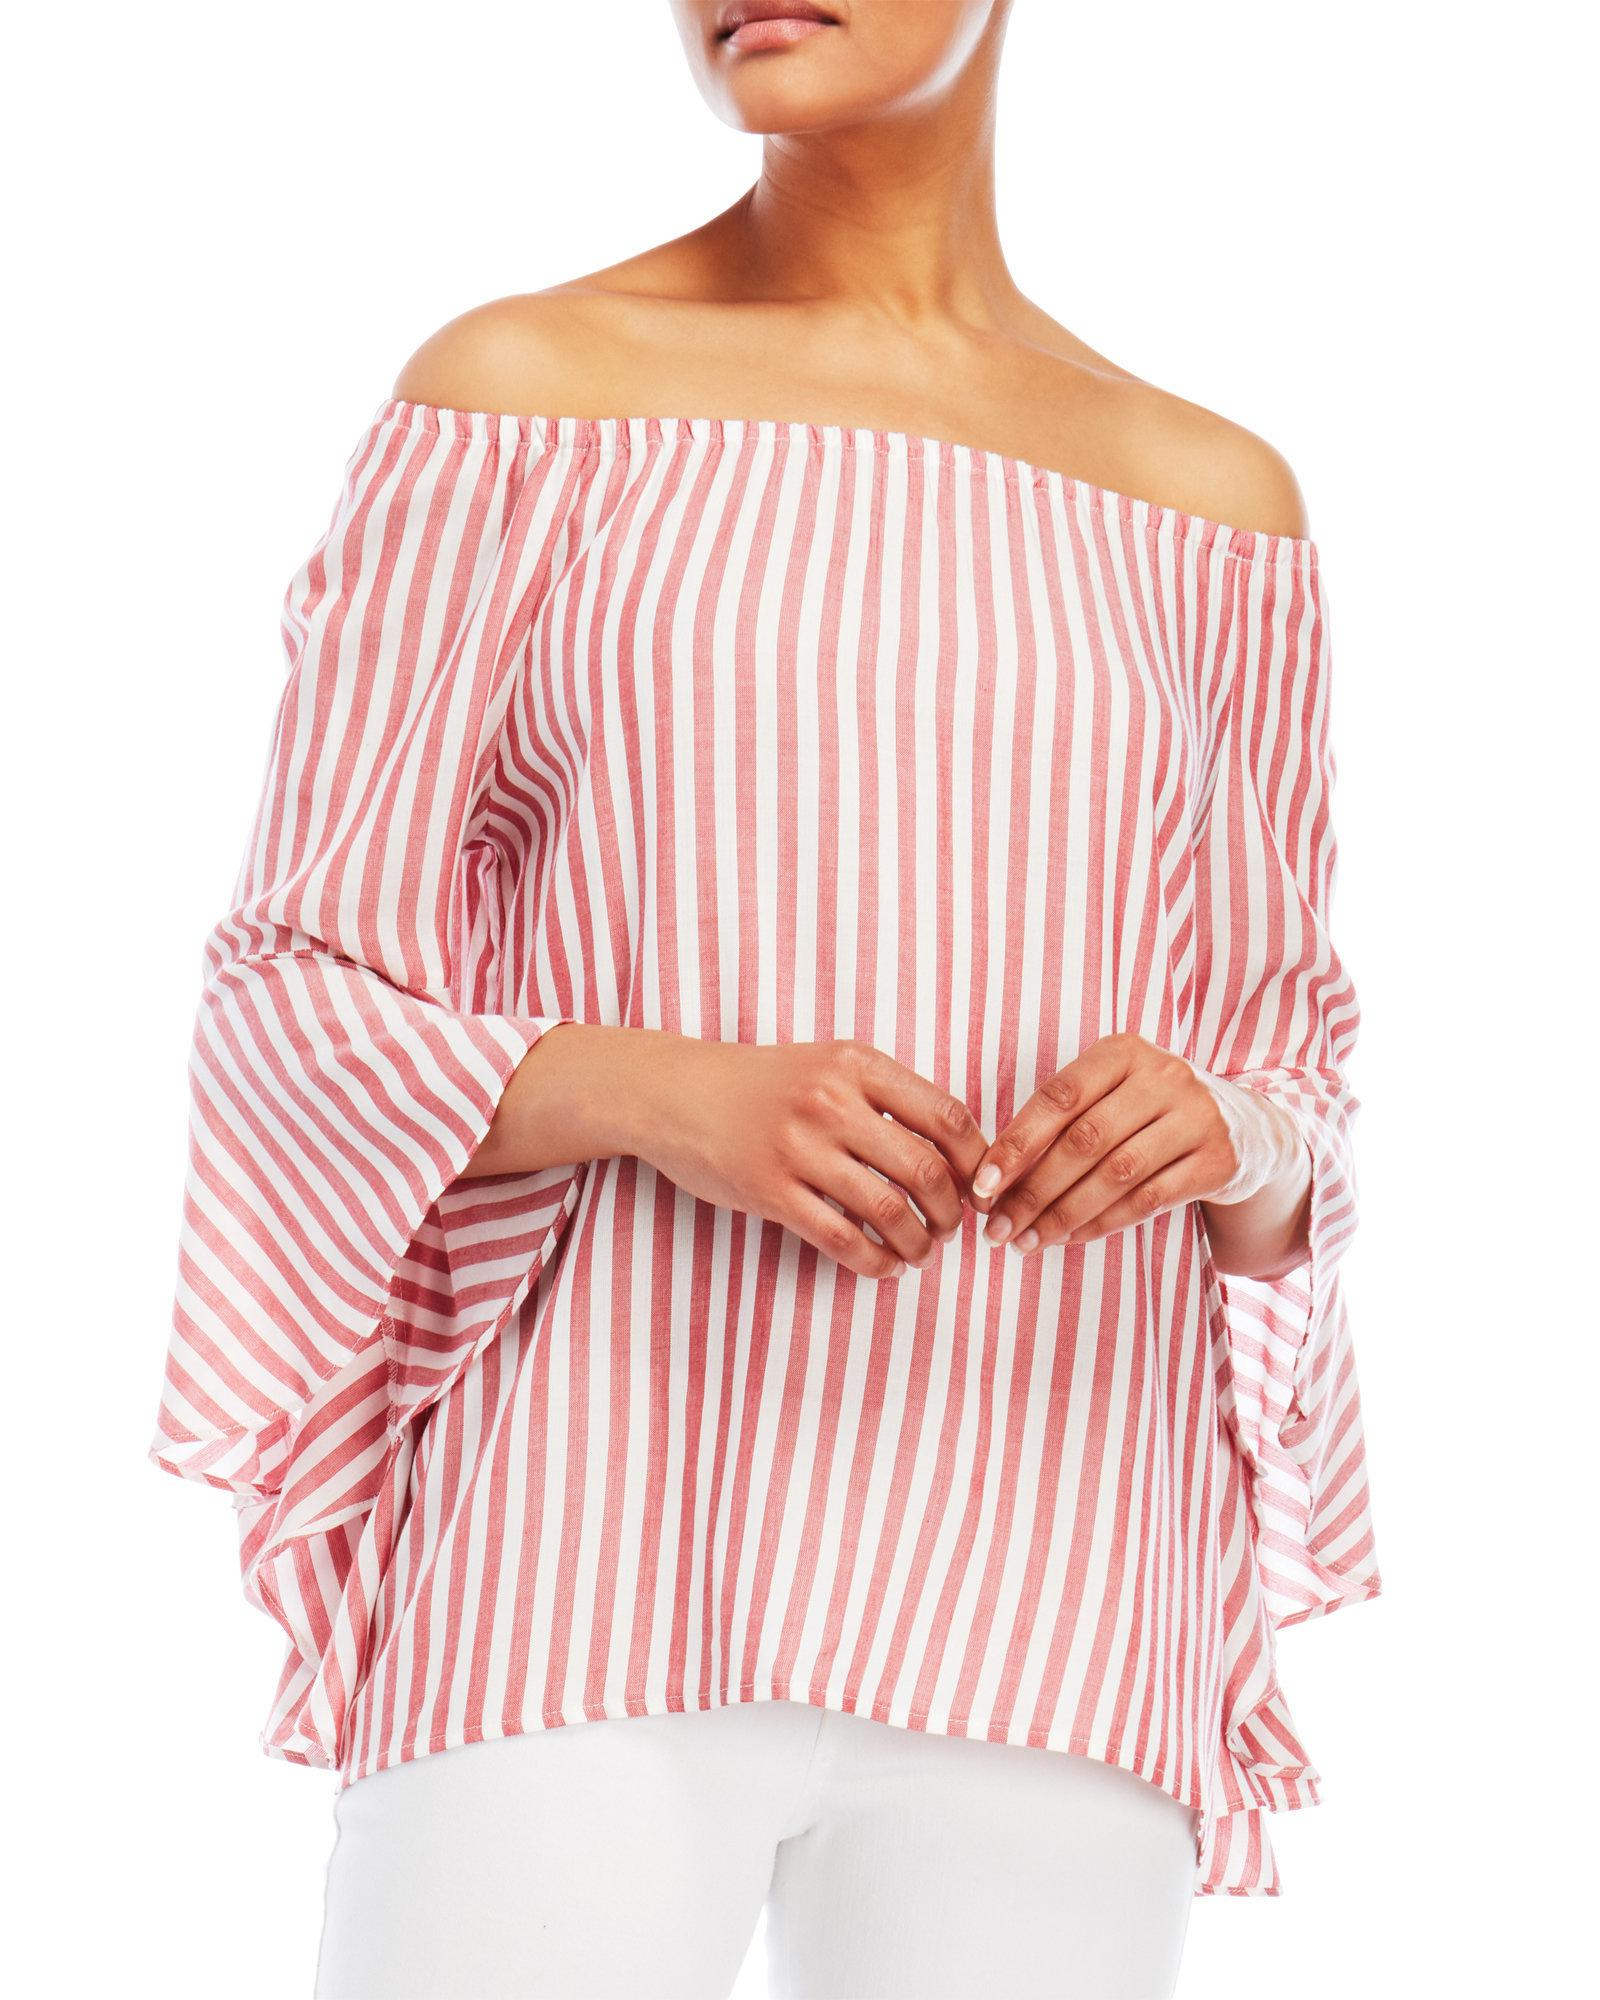 da3a61f66f0f5 Lyst - Fever Red Stripe Off-the-shoulder Bell Sleeve Top in Red